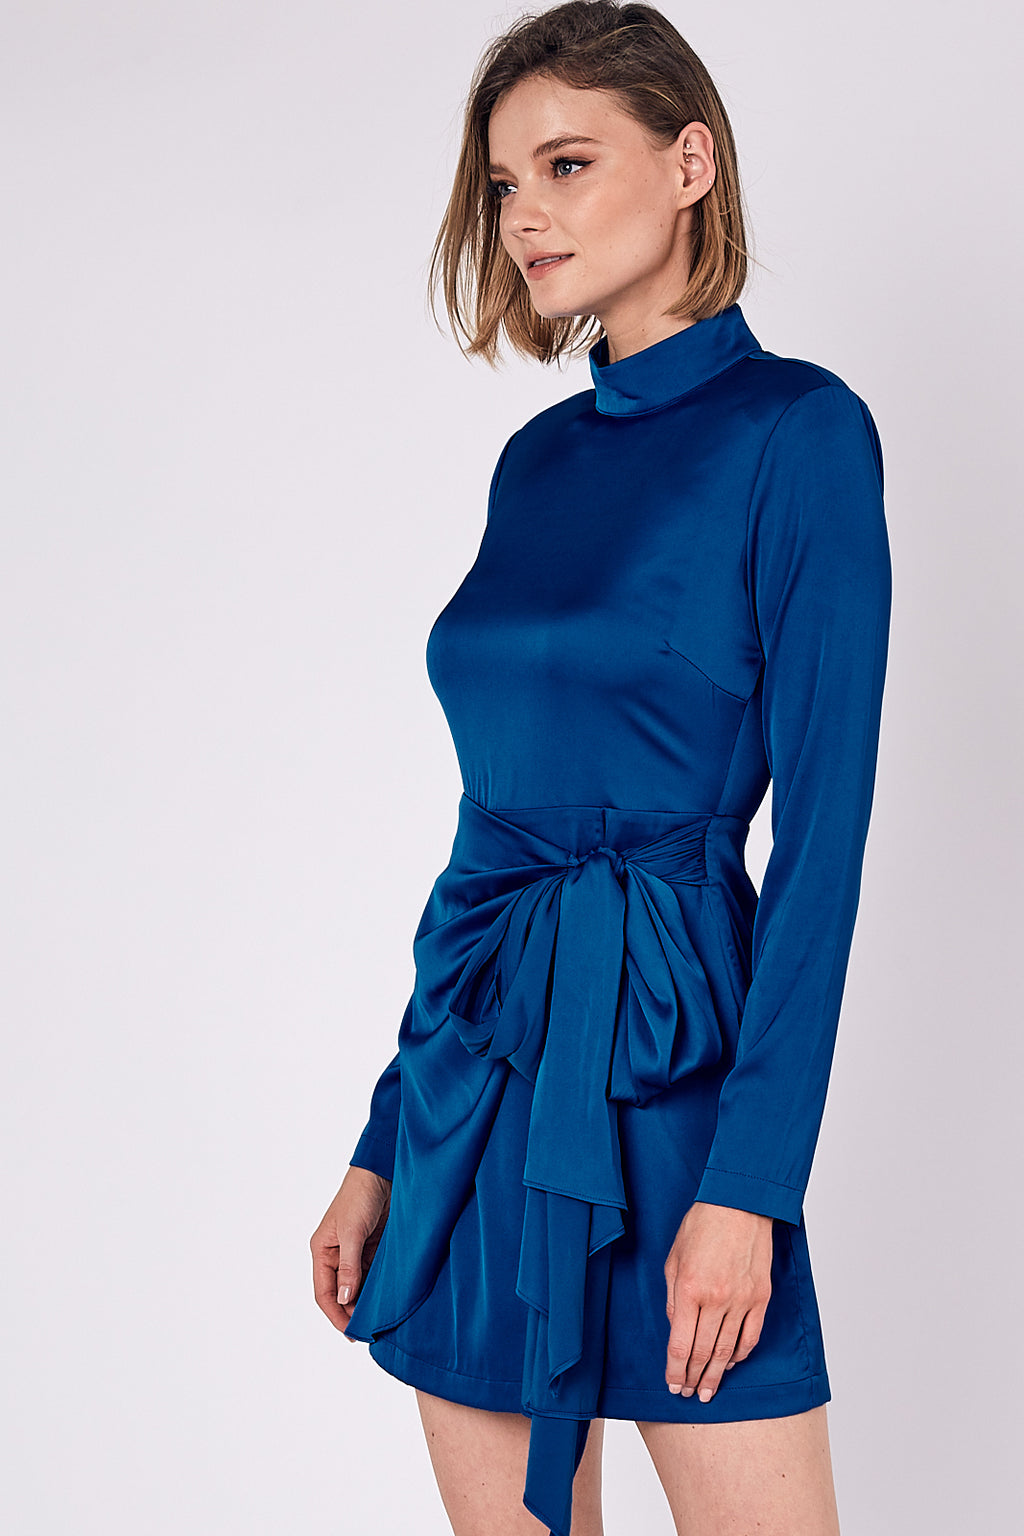 Glow Up Satin Wrap Dress - Royal Blue